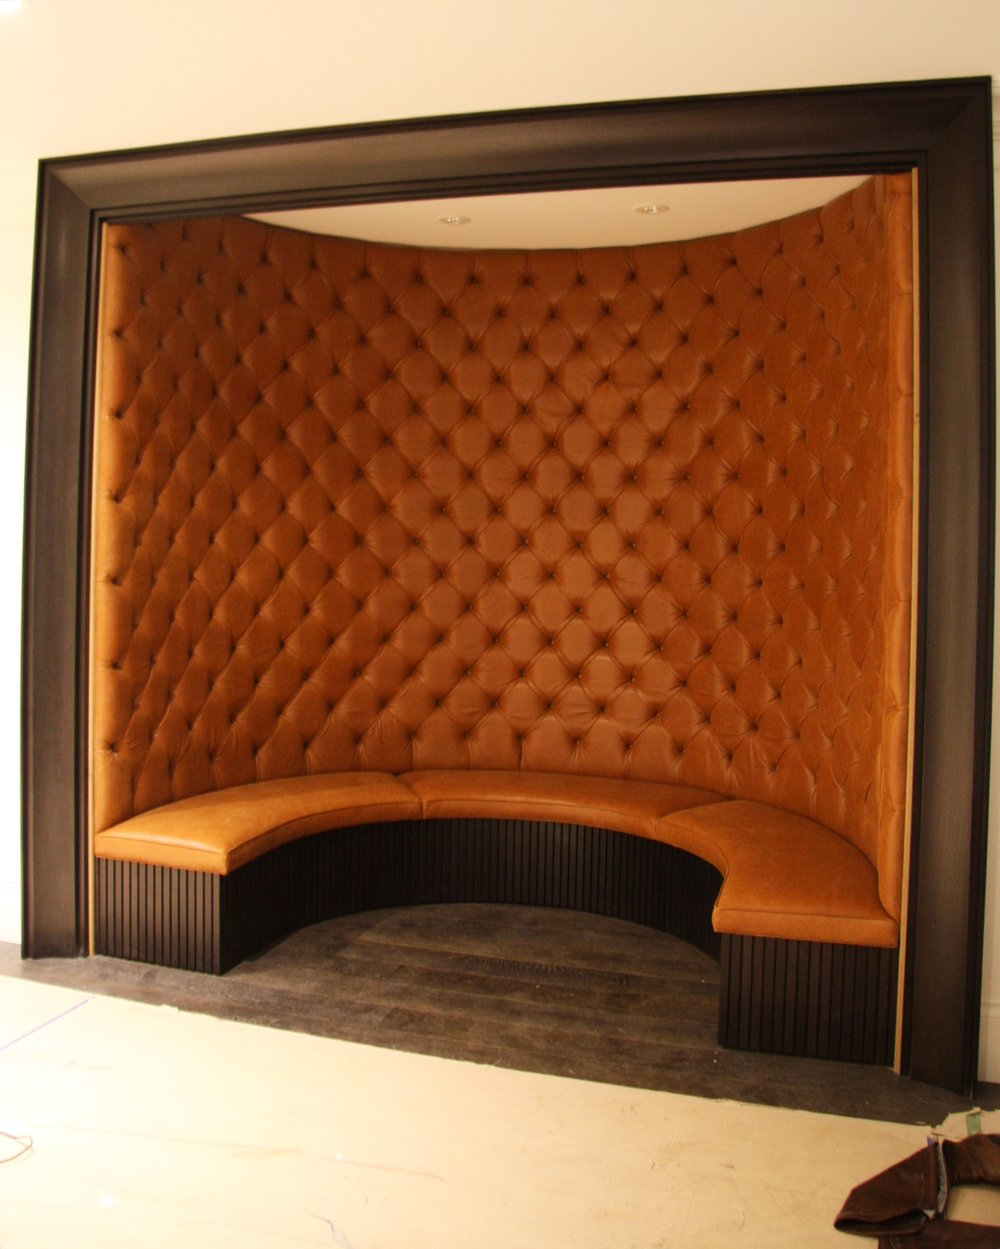 Copy of built in leather alcove for Kelly Deck Design %2F Mullberry Homes.JPG